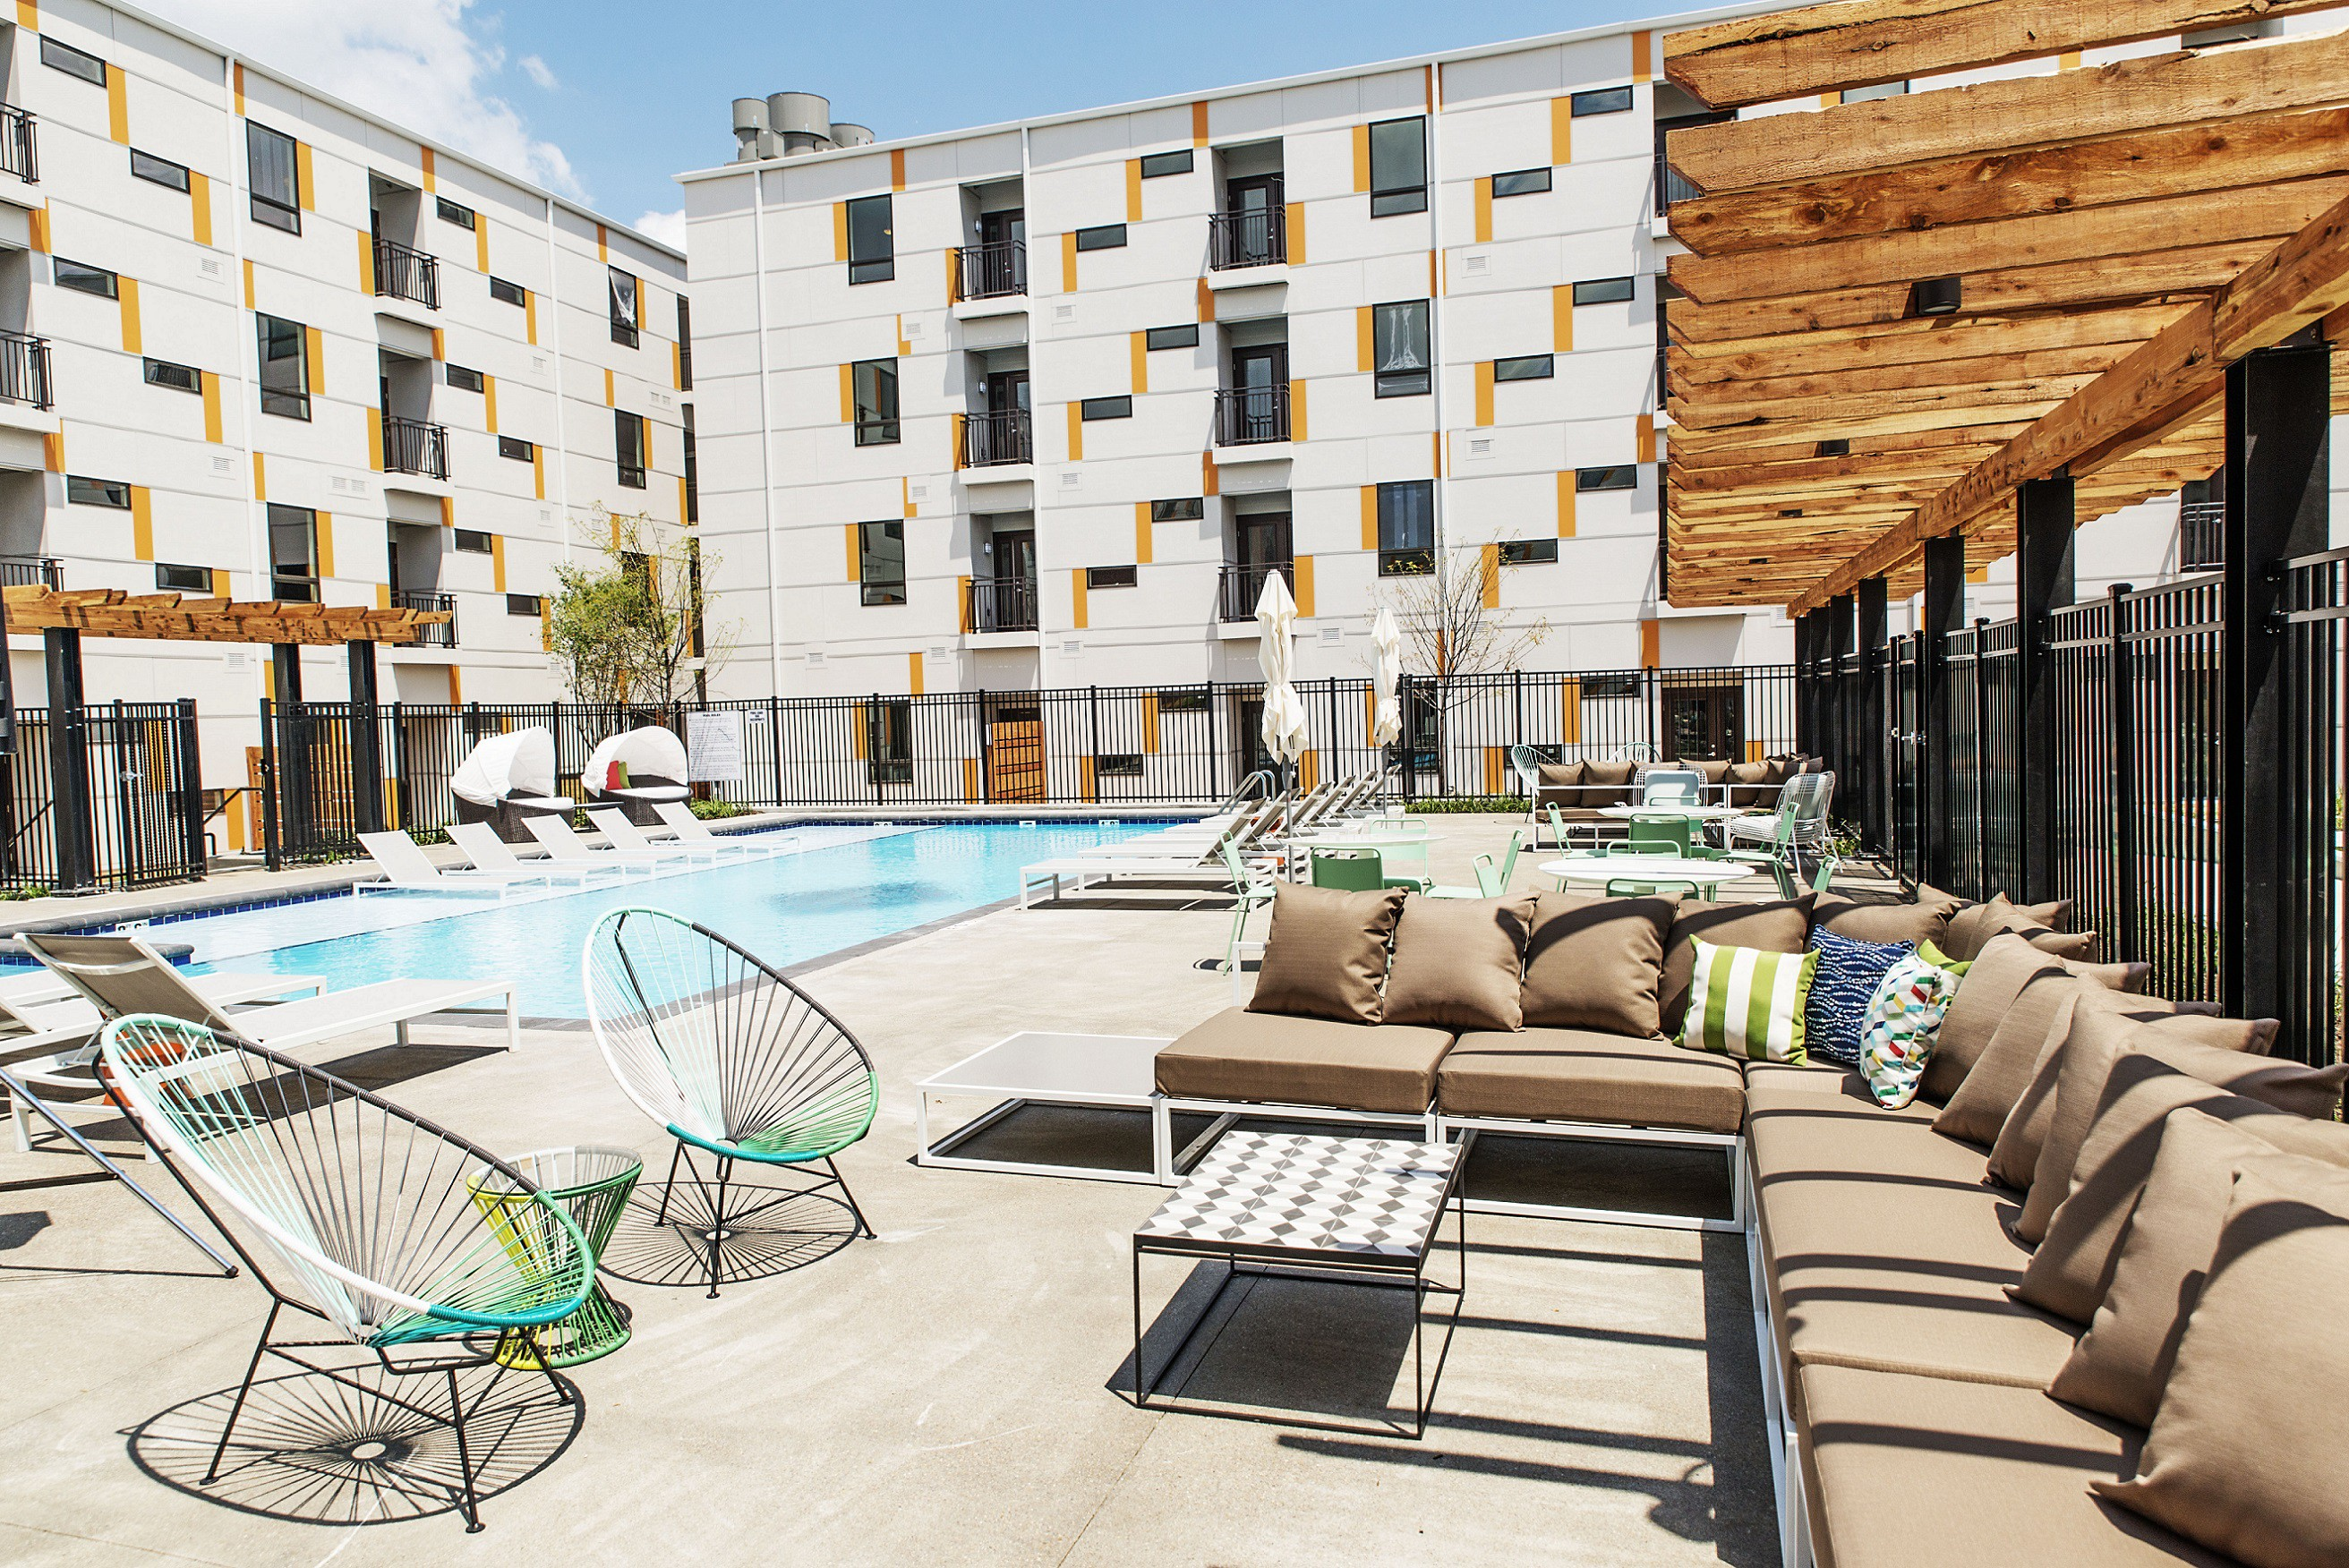 Apartments Near IUPUI Lockerbie Lofts for Indiana University-Purdue University Students in Indianapolis, IN